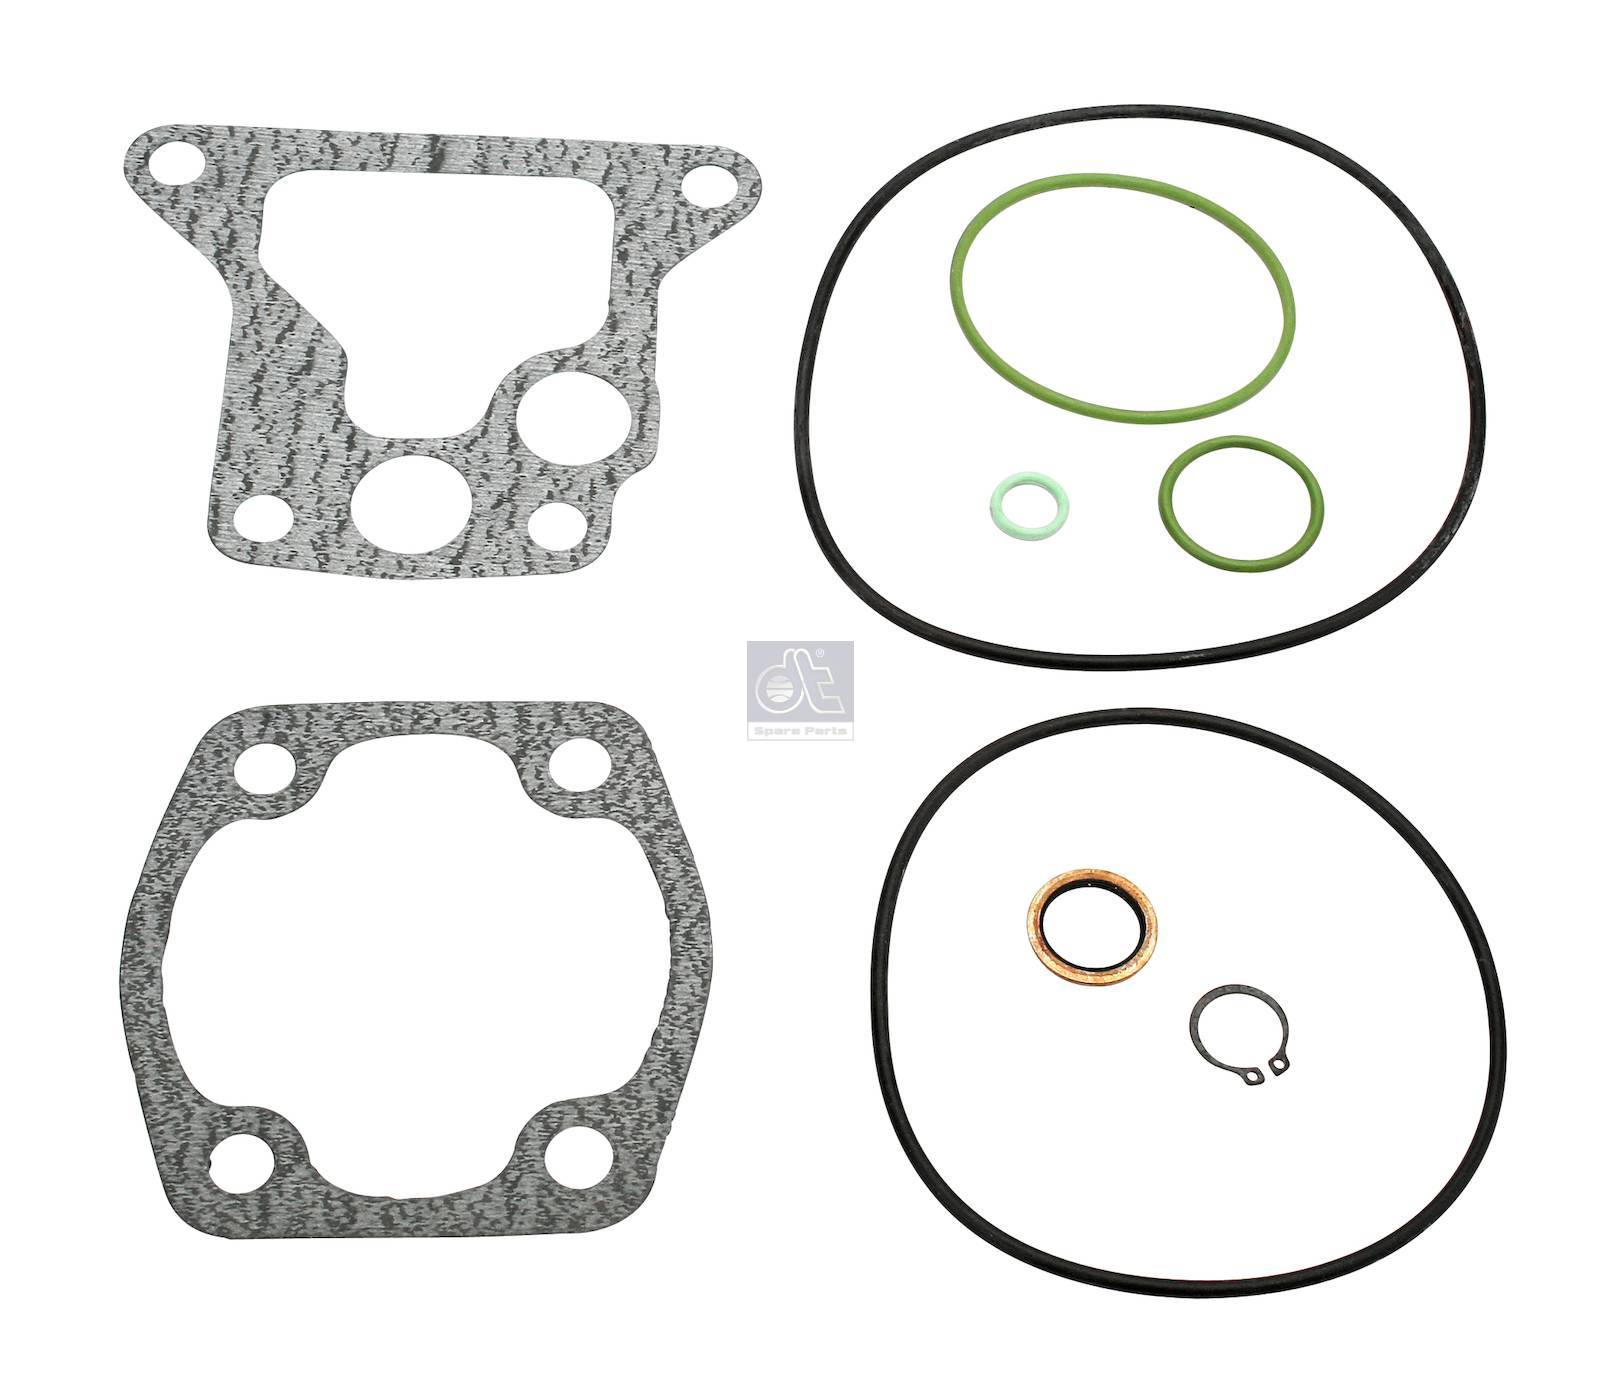 Dt 1 Gasket Kit Oil Cleaner Suitable For Scania